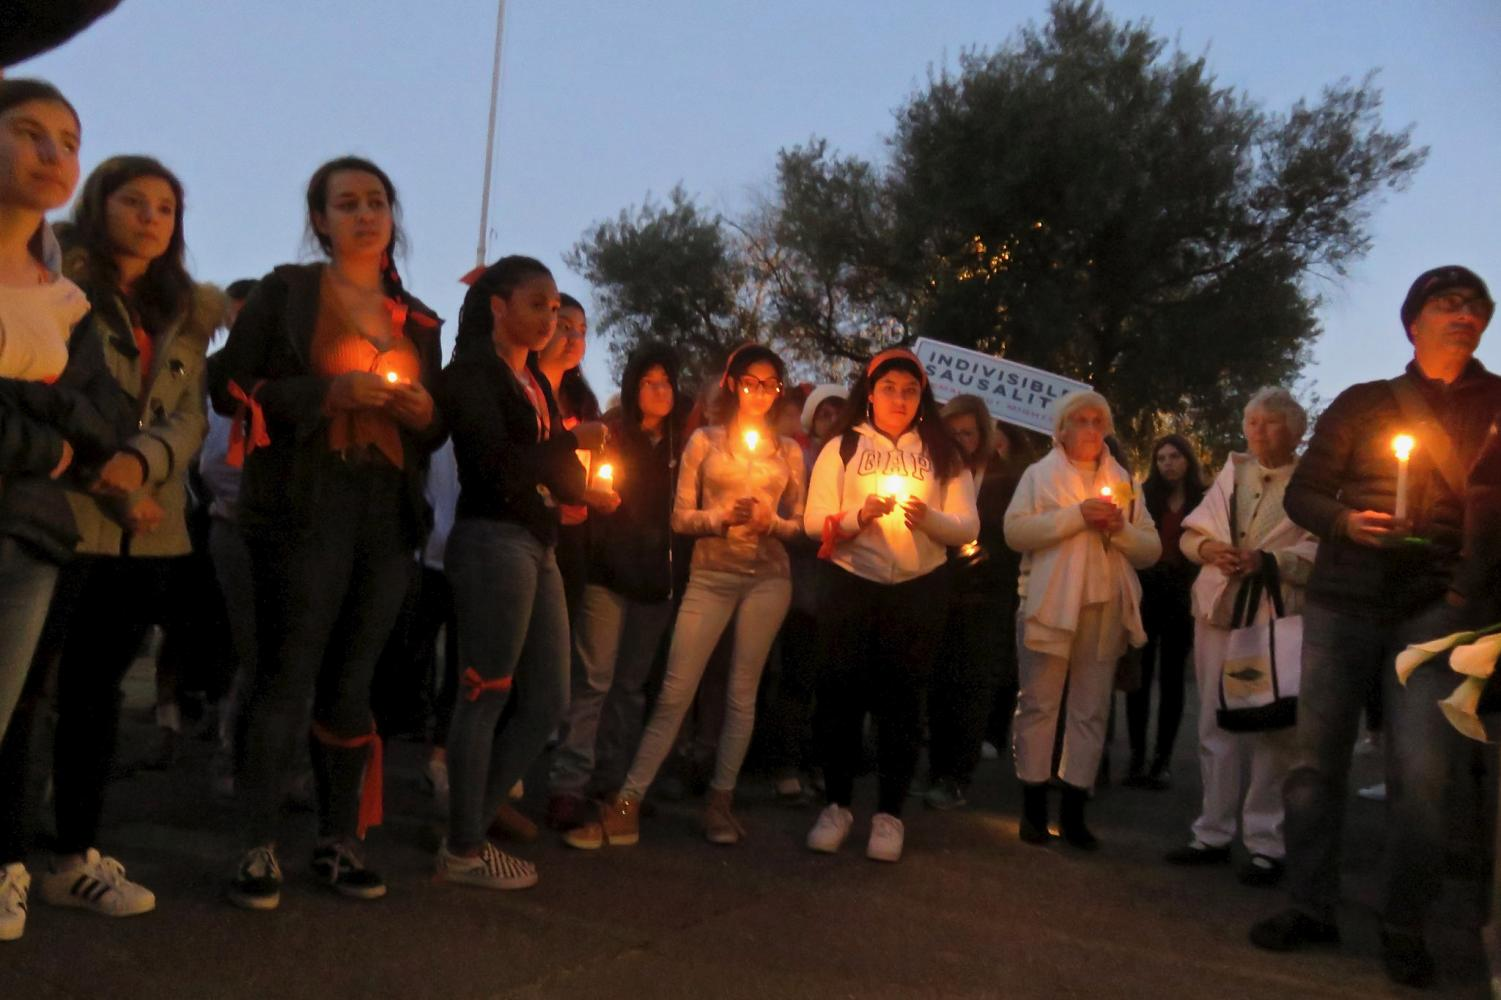 Students at Tam High School hold a candlelight vigil for the victims of the recent school shooting in Parkland, Florida.